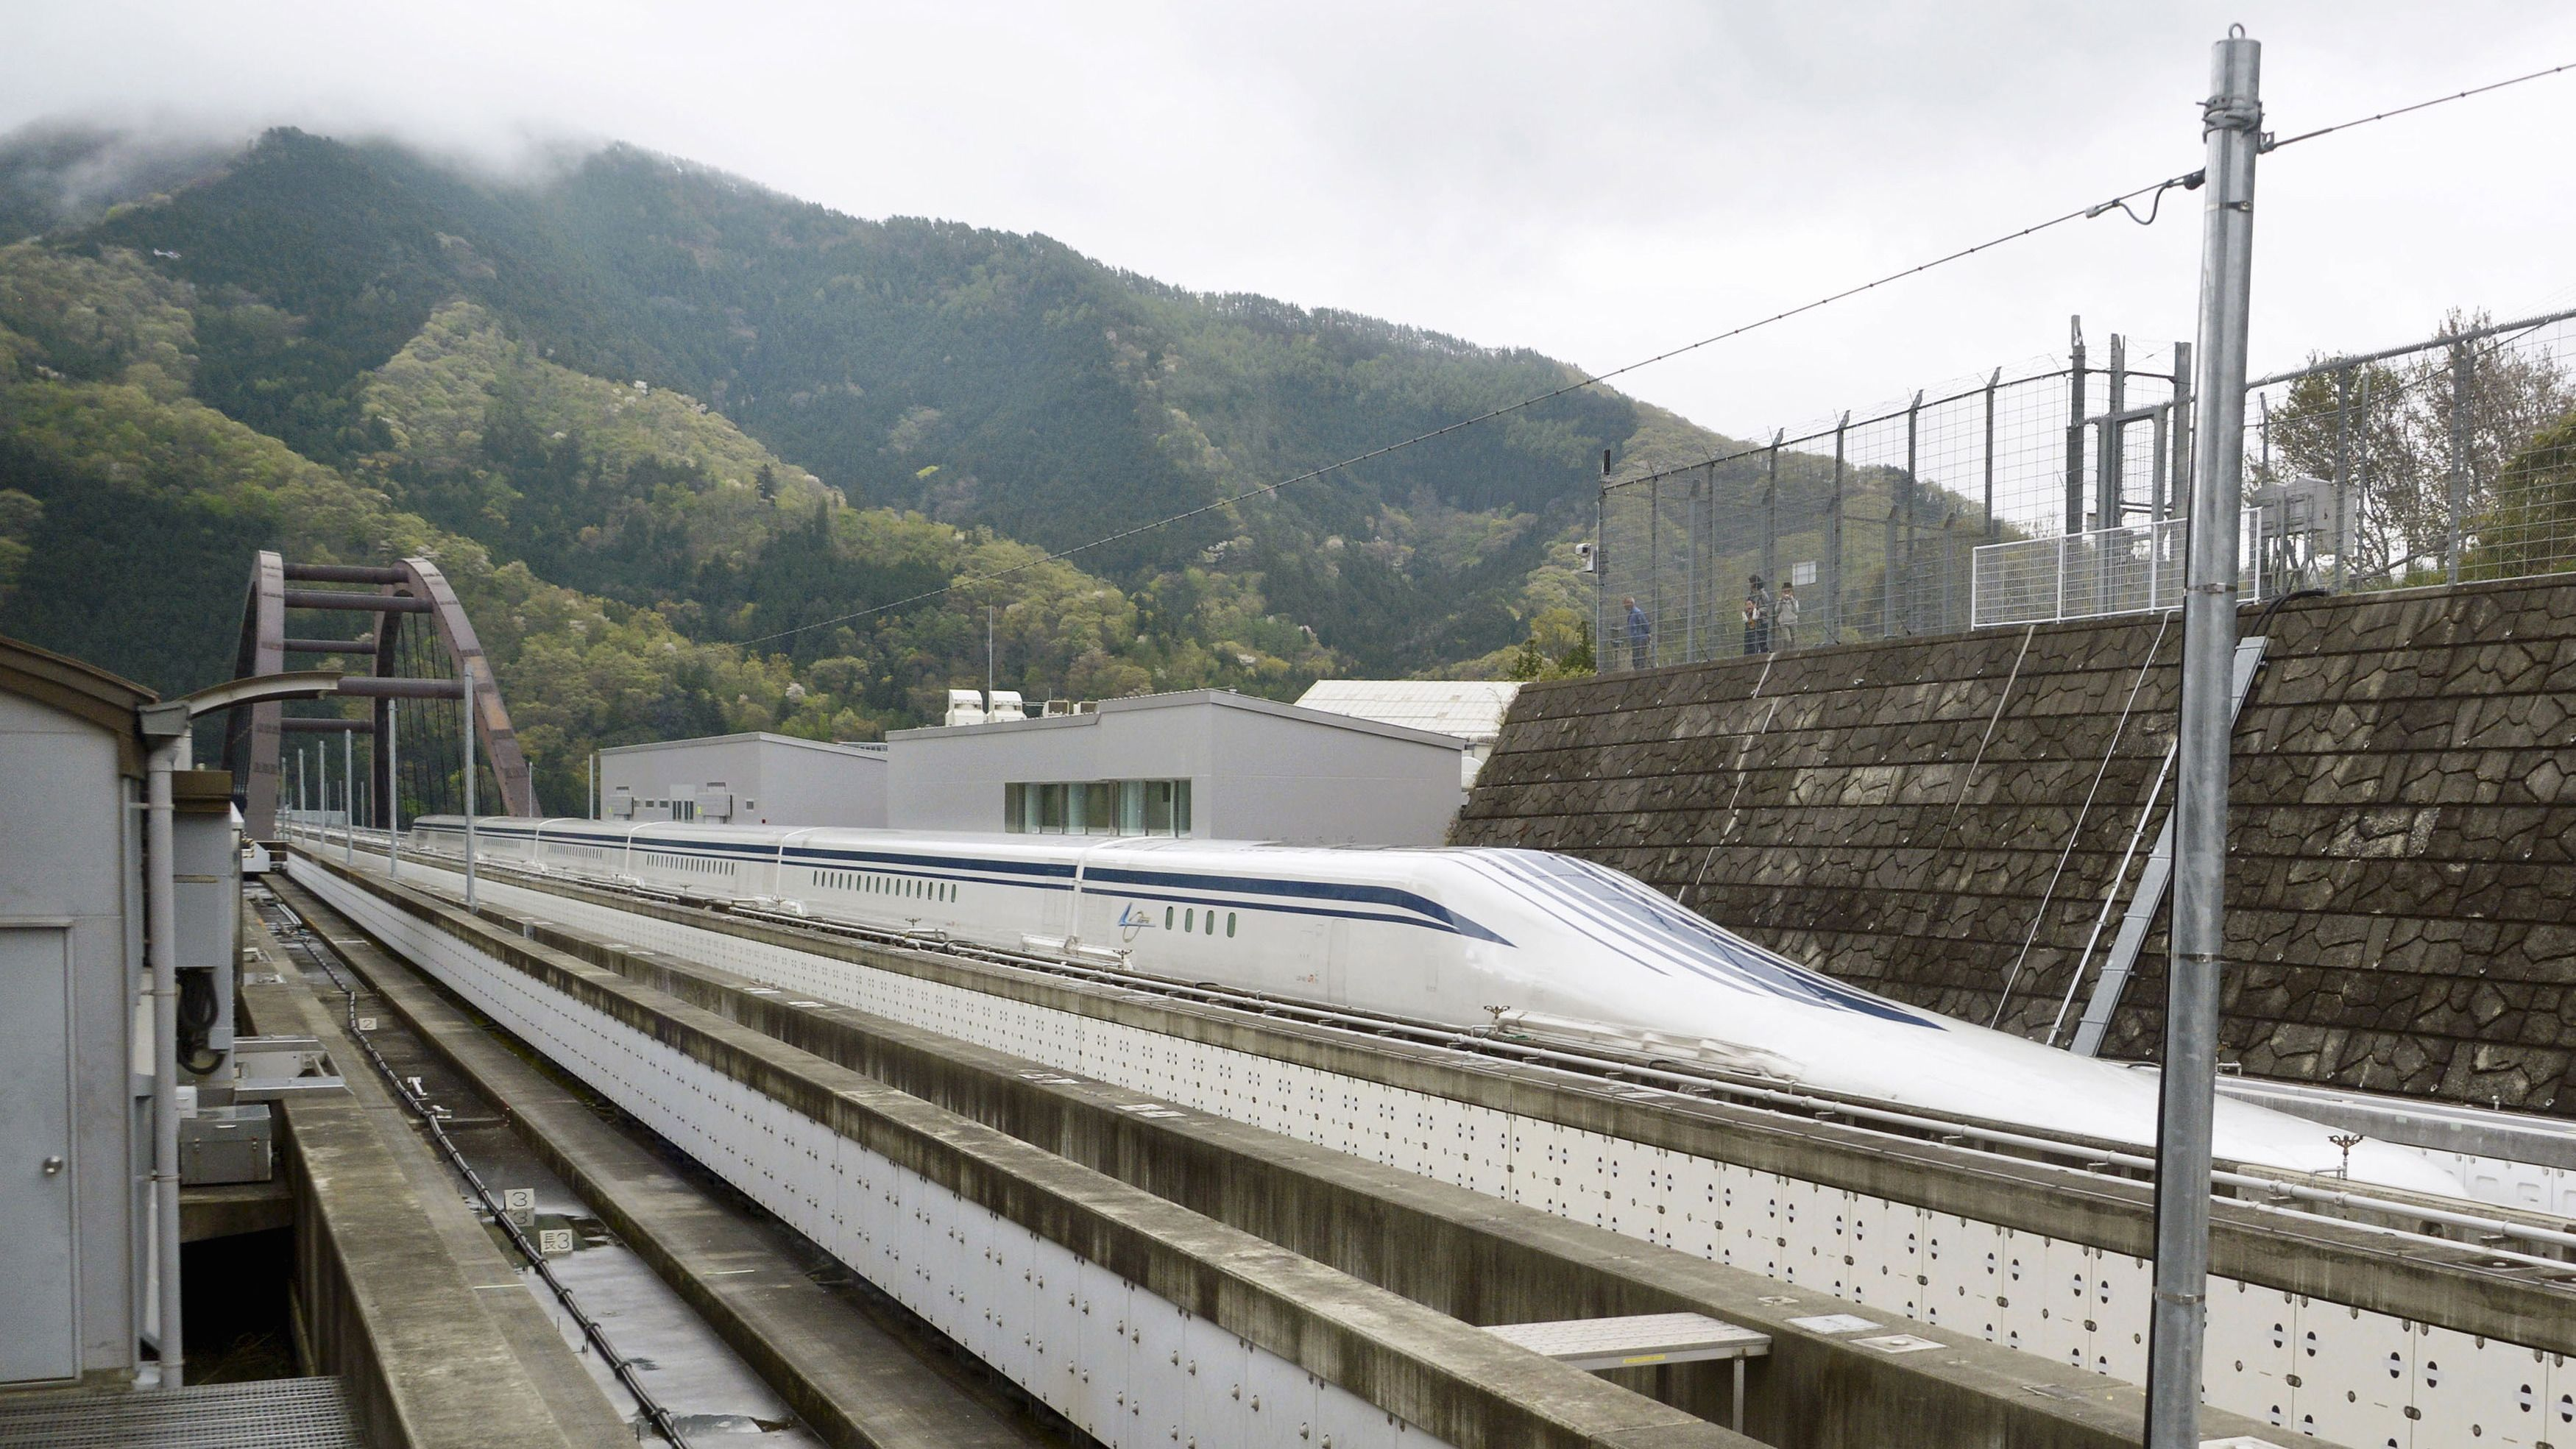 A magnetically levitating train operated by Central Japan Railway Co. making a test run is seen on an experimental track in Tsuru, Yamanashi Prefecture, in this photo taken by Kyodo April 21, 2015. Japan's experimental magnetically levitating train or maglev managed to break the new world speed record on Tuesday with a top speed of 603 kilometres (374 miles) per hour, Central Japan Railway, also known as JR Tokai said.   Mandatory credit REUTERS/Kyodo ATTENTION EDITORS - FOR EDITORIAL USE ONLY. NOT FOR SALE FOR MARKETING OR ADVERTISING CAMPAIGNS. THIS IMAGE HAS BEEN SUPPLIED BY A THIRD PARTY. IT IS DISTRIBUTED, EXACTLY AS RECEIVED BY REUTERS, AS A SERVICE TO CLIENTS. MANDATORY CREDIT. JAPAN OUT. NO COMMERCIAL OR EDITORIAL SALES IN JAPAN.  TPX IMAGES OF THE DAY.	  - RTX19LKK